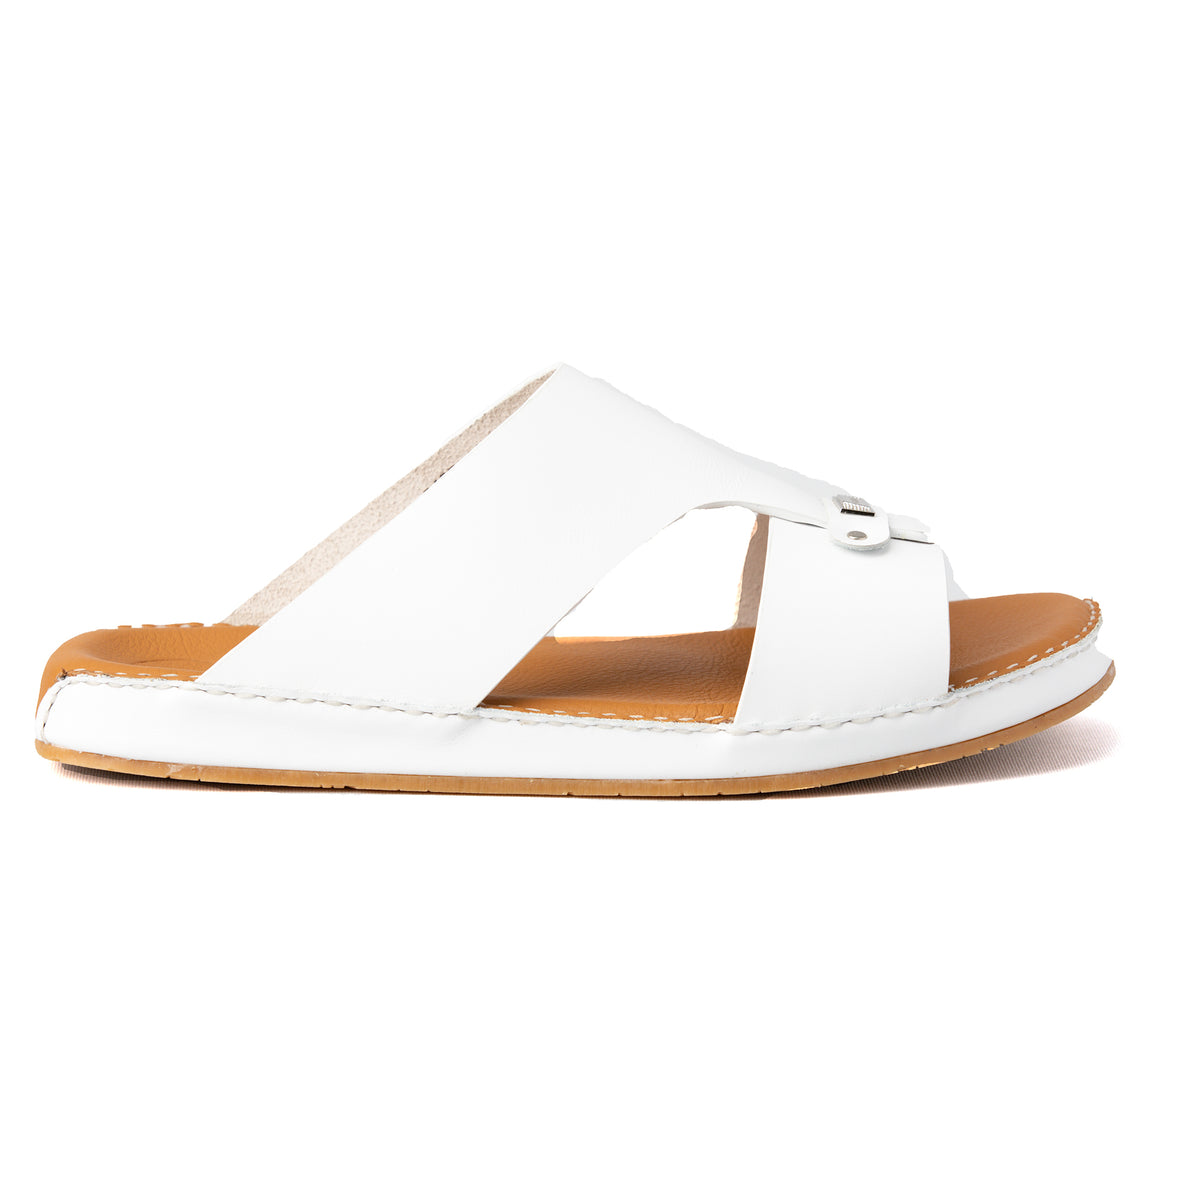 NOVO CALF WHITE FLAT SOLE ARABIC SANDAL (9405-11)